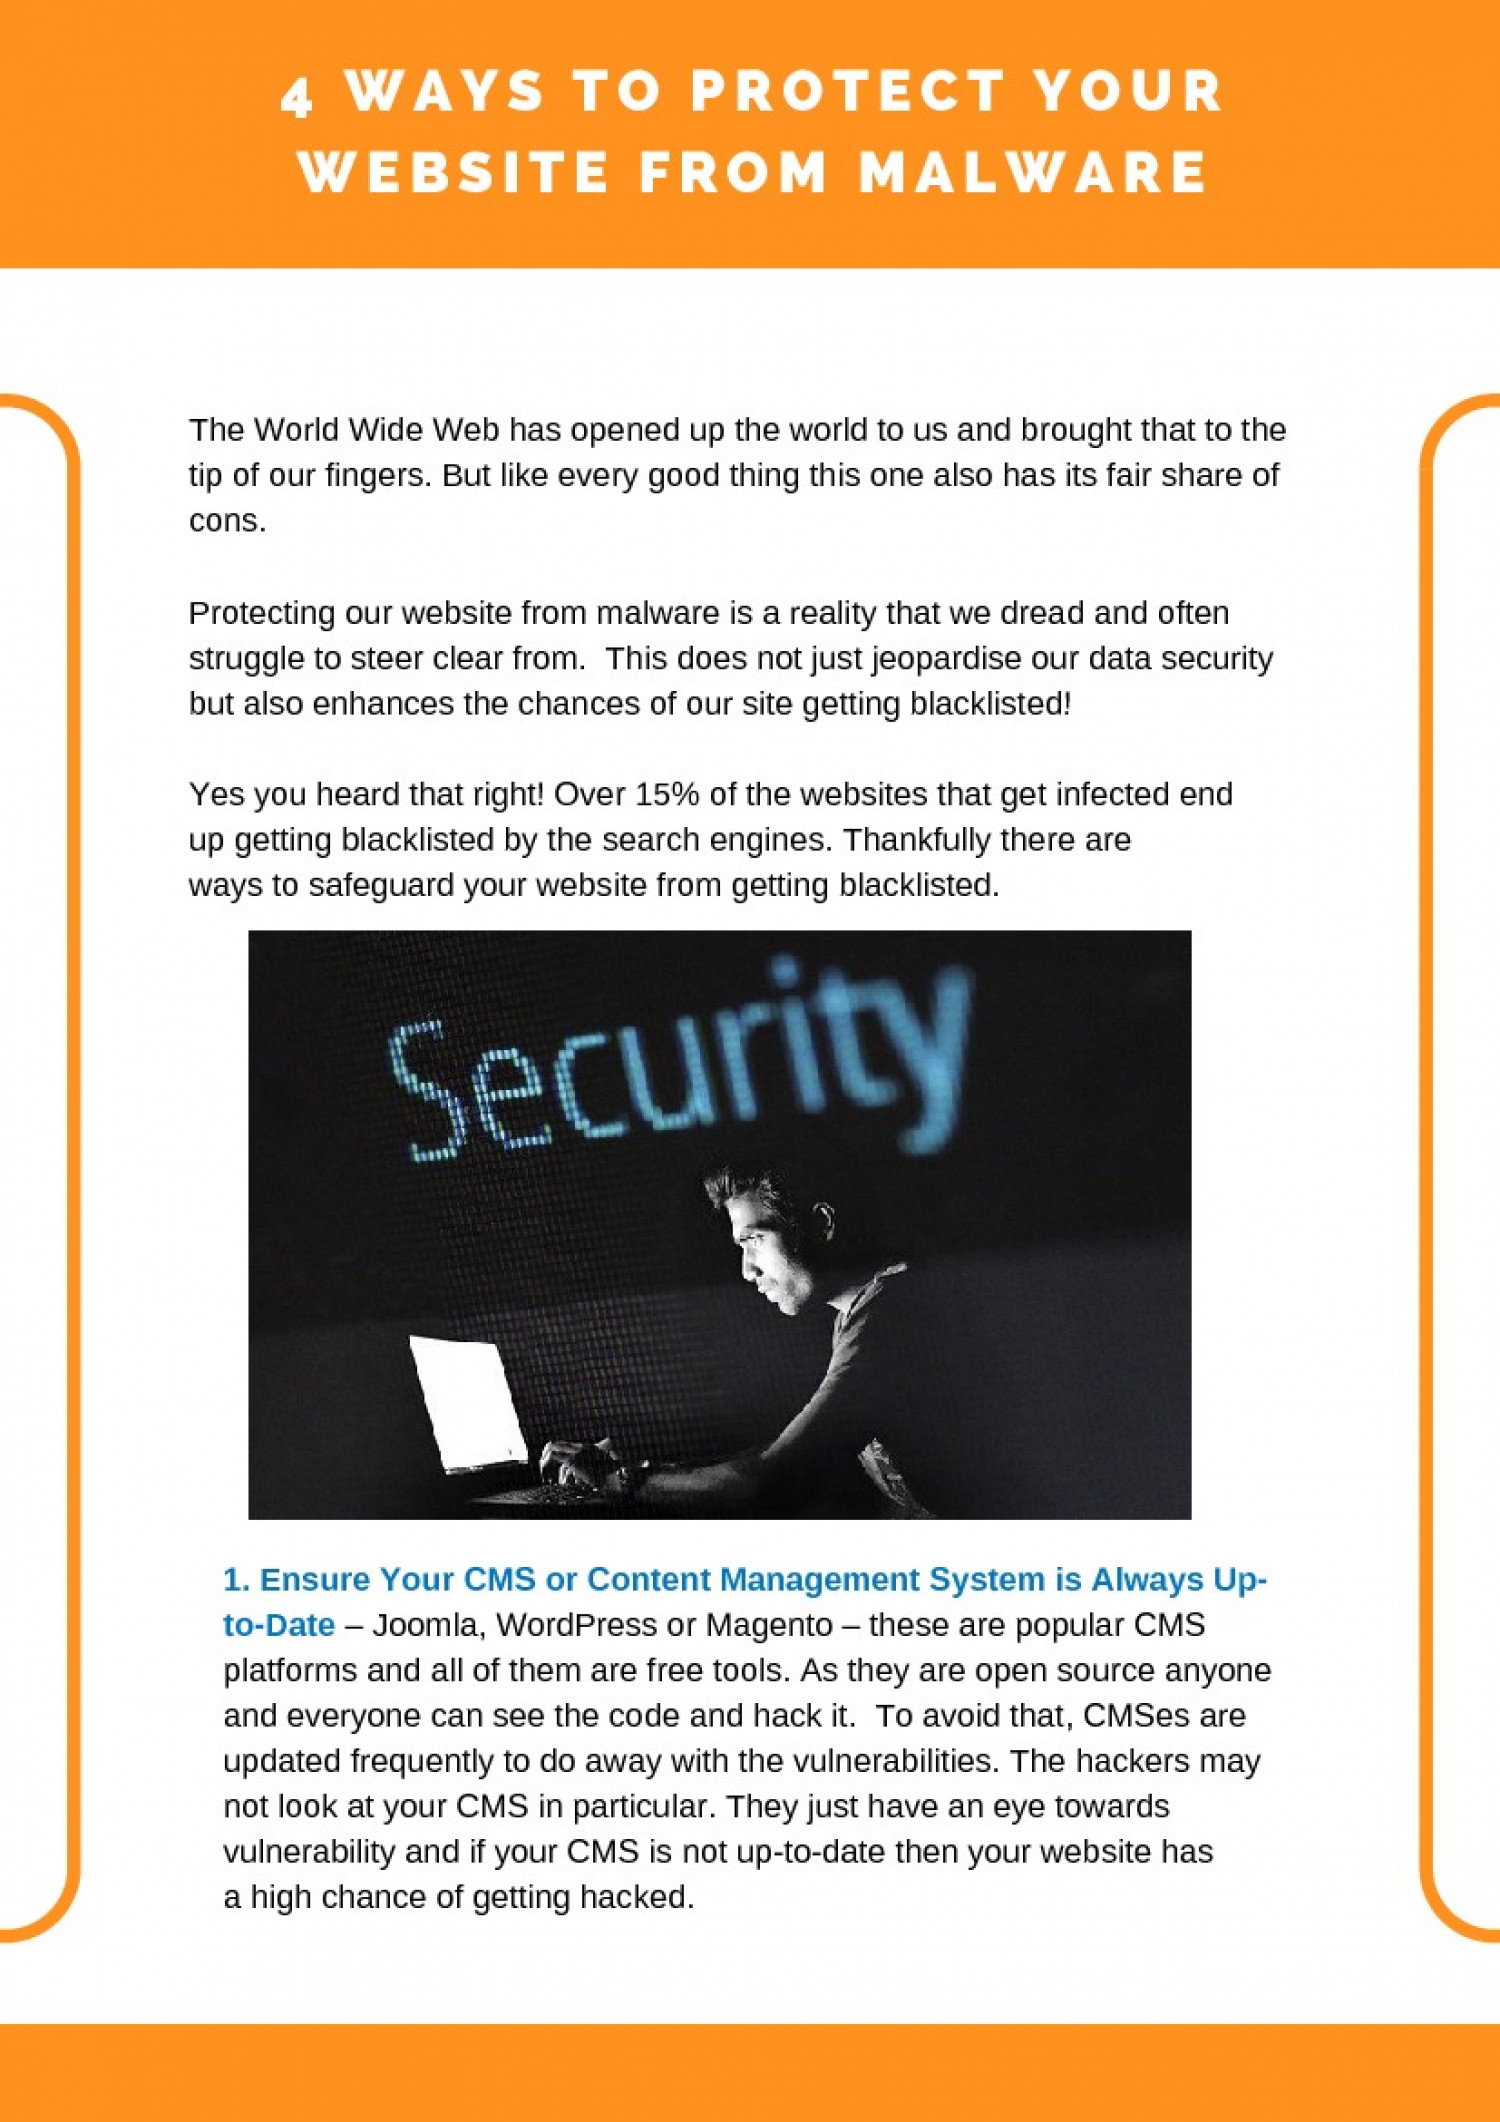 4 Ways to Protect Your Website from Malware Infographic